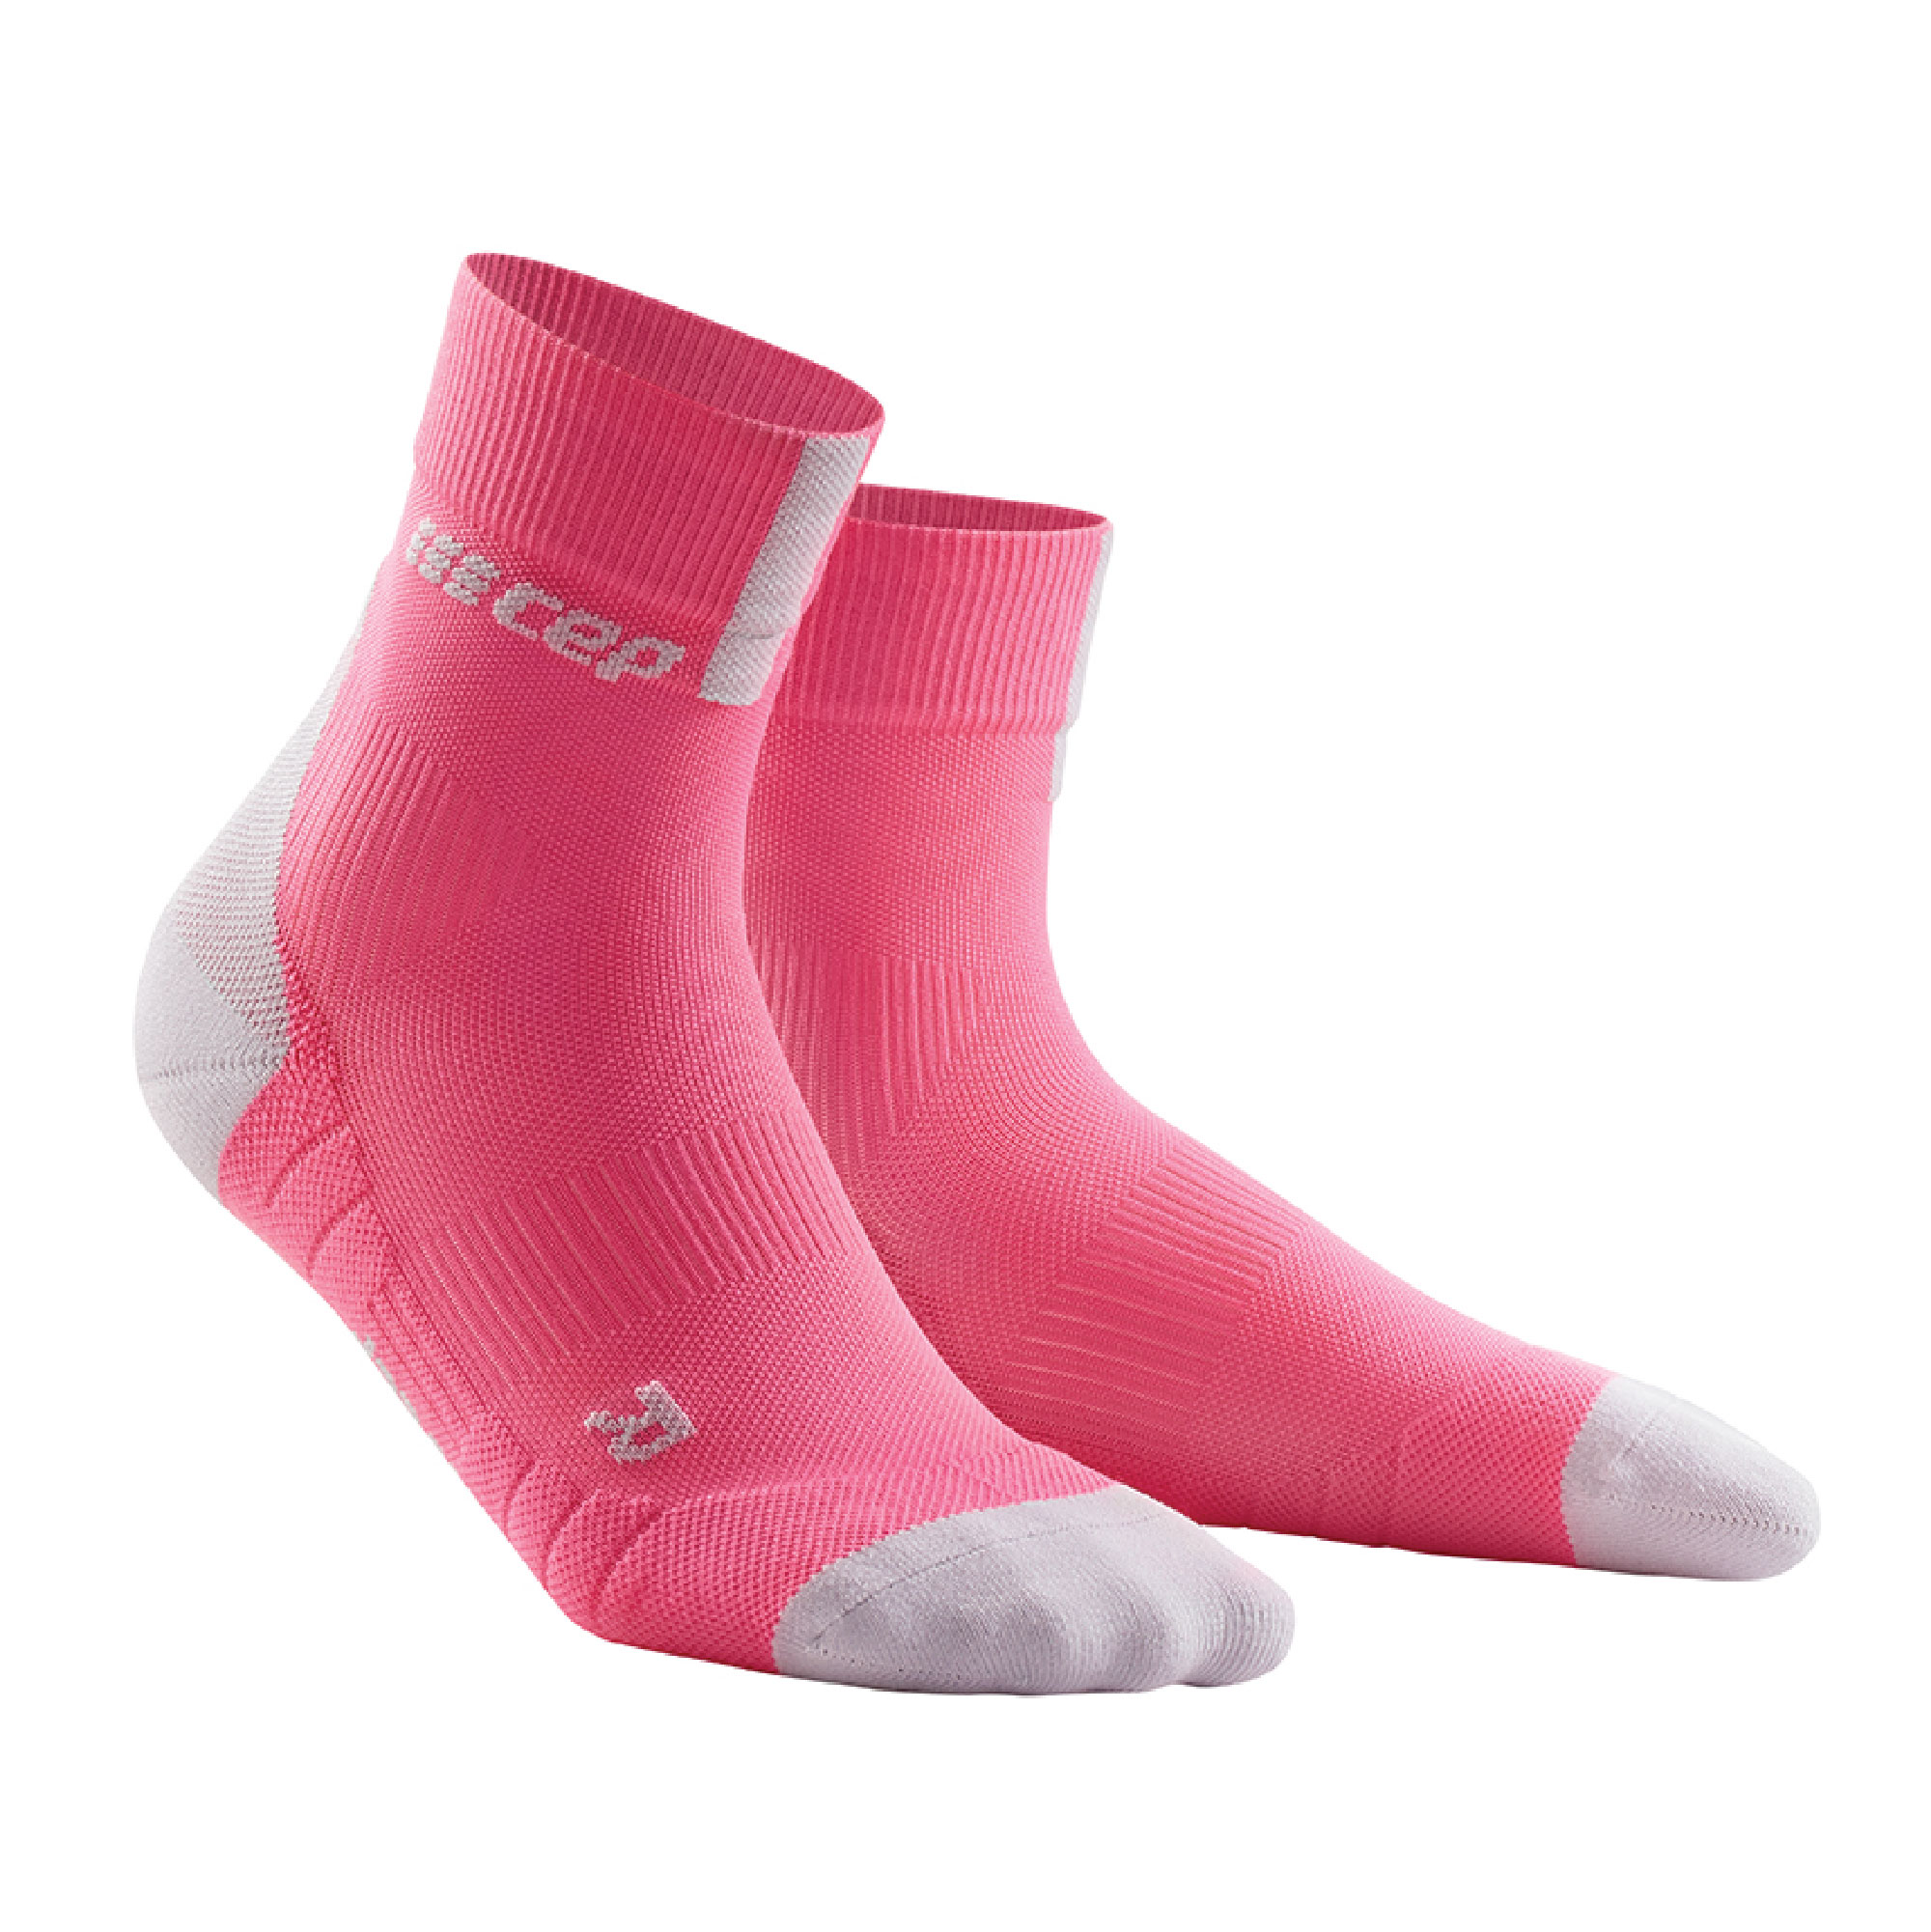 SHORT SOCKS 3.0 | WOMEN